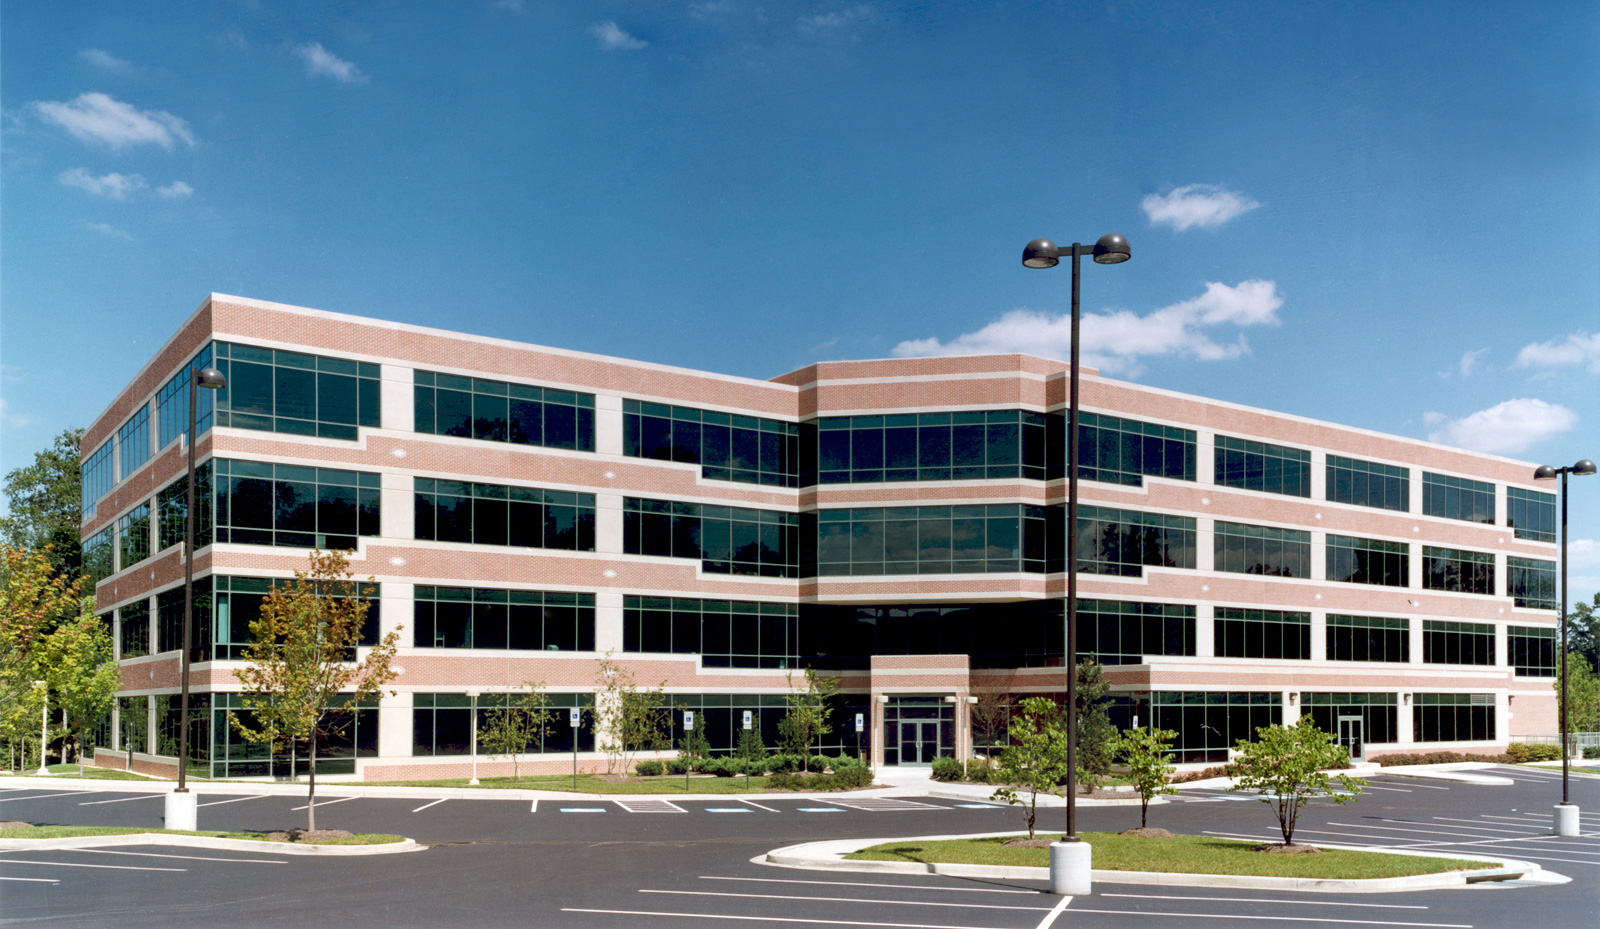 Woodlands columbia md slenderwall precast concrete panels for Builders in md